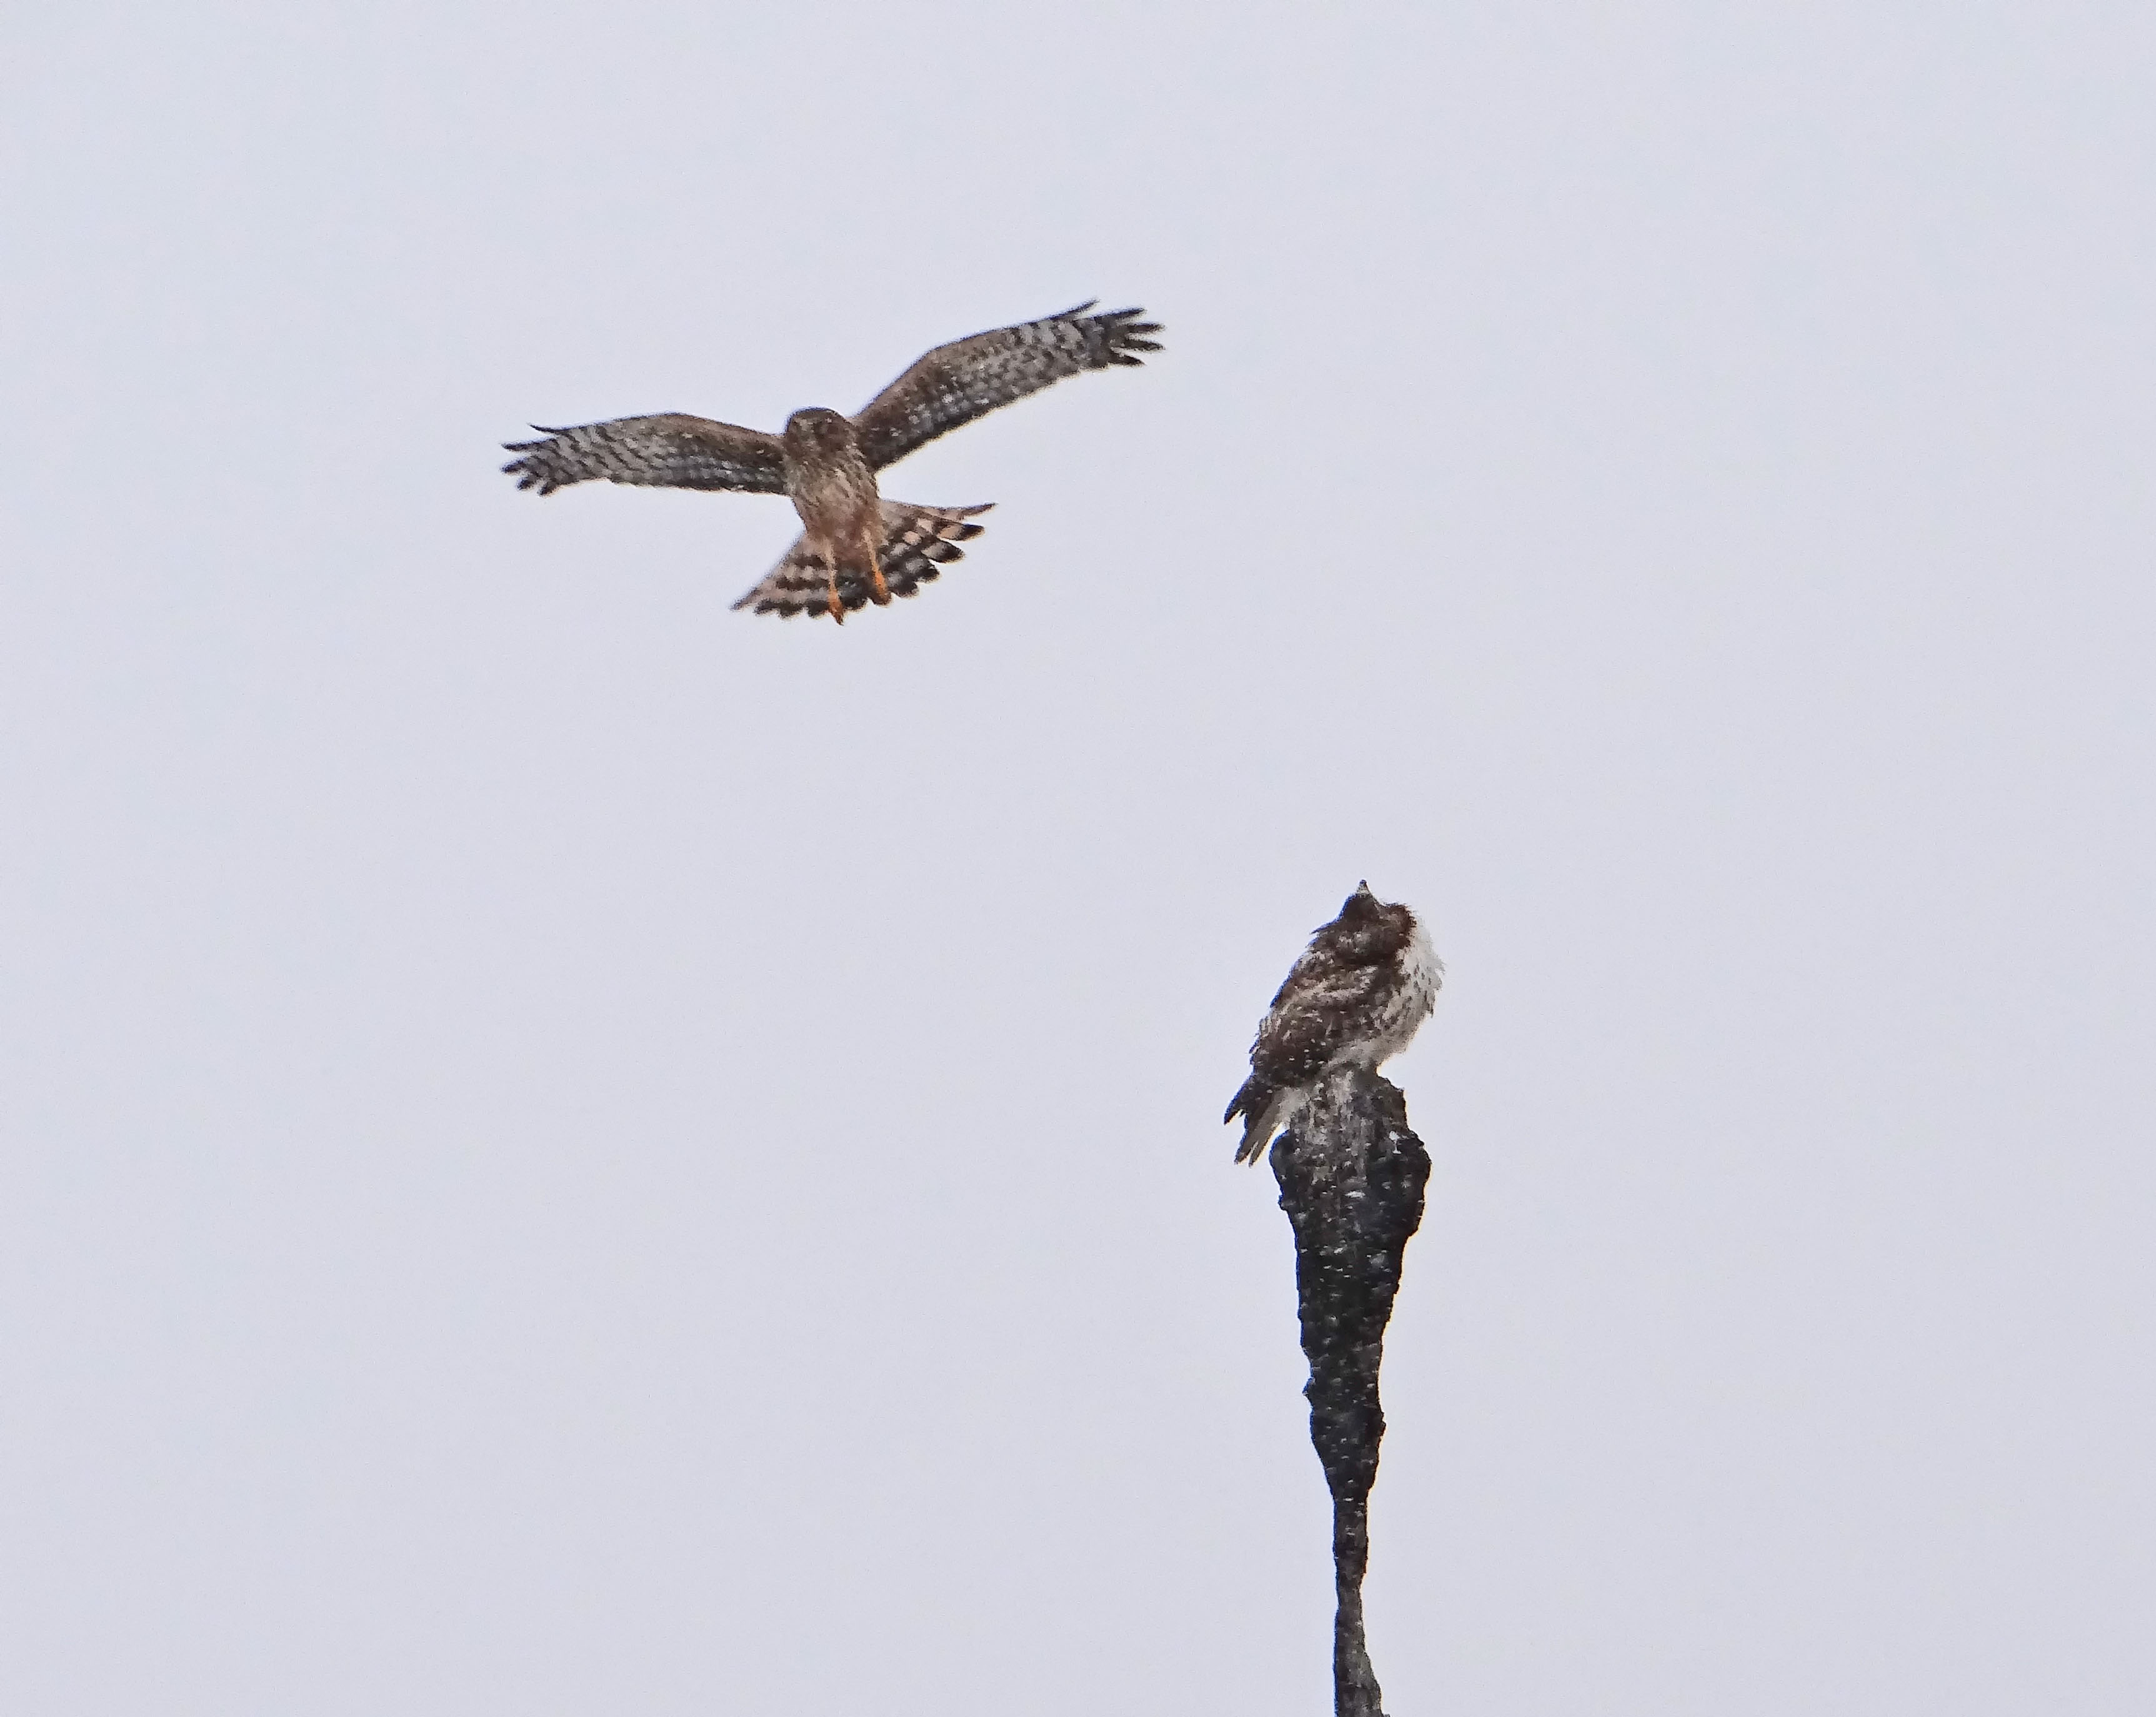 Northern Harrier attacking a Red-tailed Hawk... Photo courtesy of Wayne Hoch